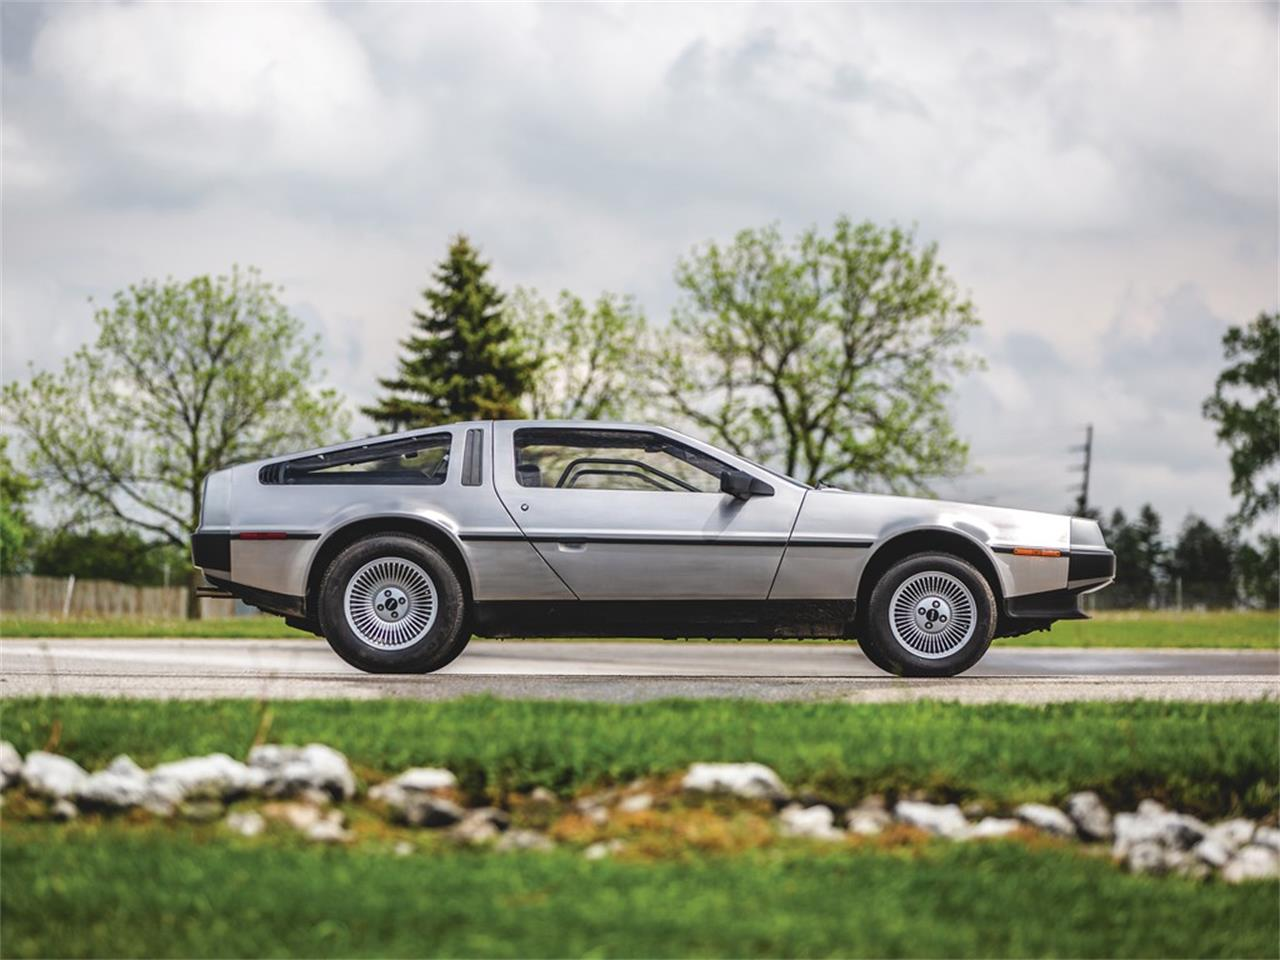 Large Picture of 1983 DeLorean DMC-12 Offered by RM Sotheby's 787999 (remove ID# on next use) - Q5JH